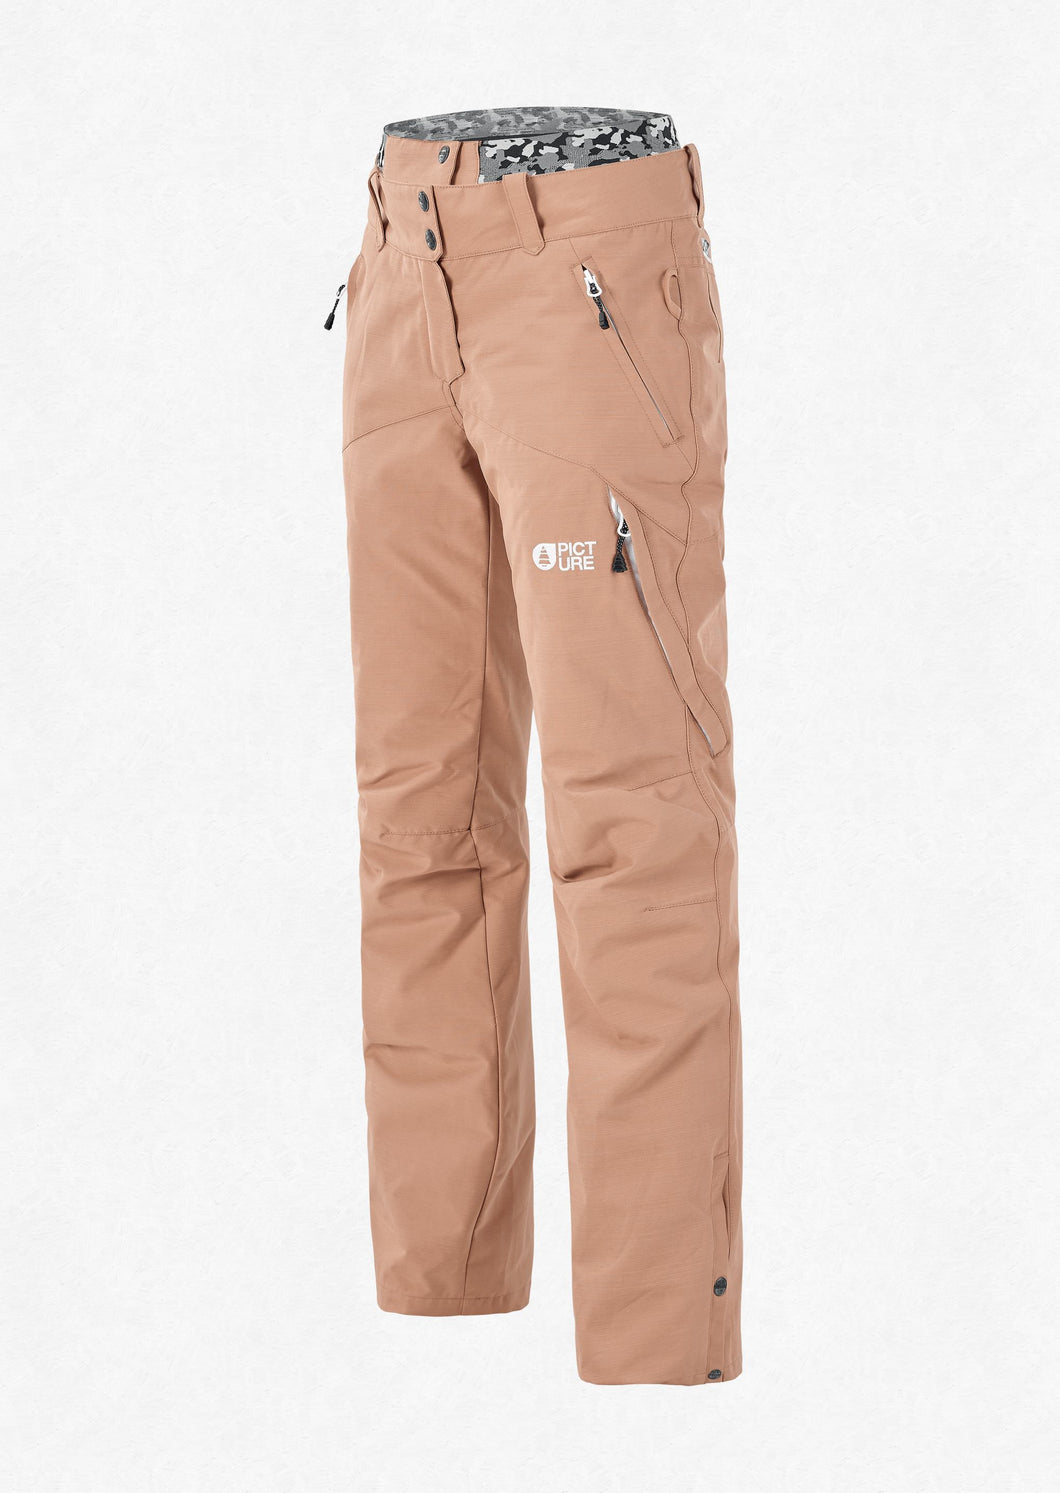 Picture Women's Treva 10K Waterproof Ski and Snowboard Snow Pant Sand Front